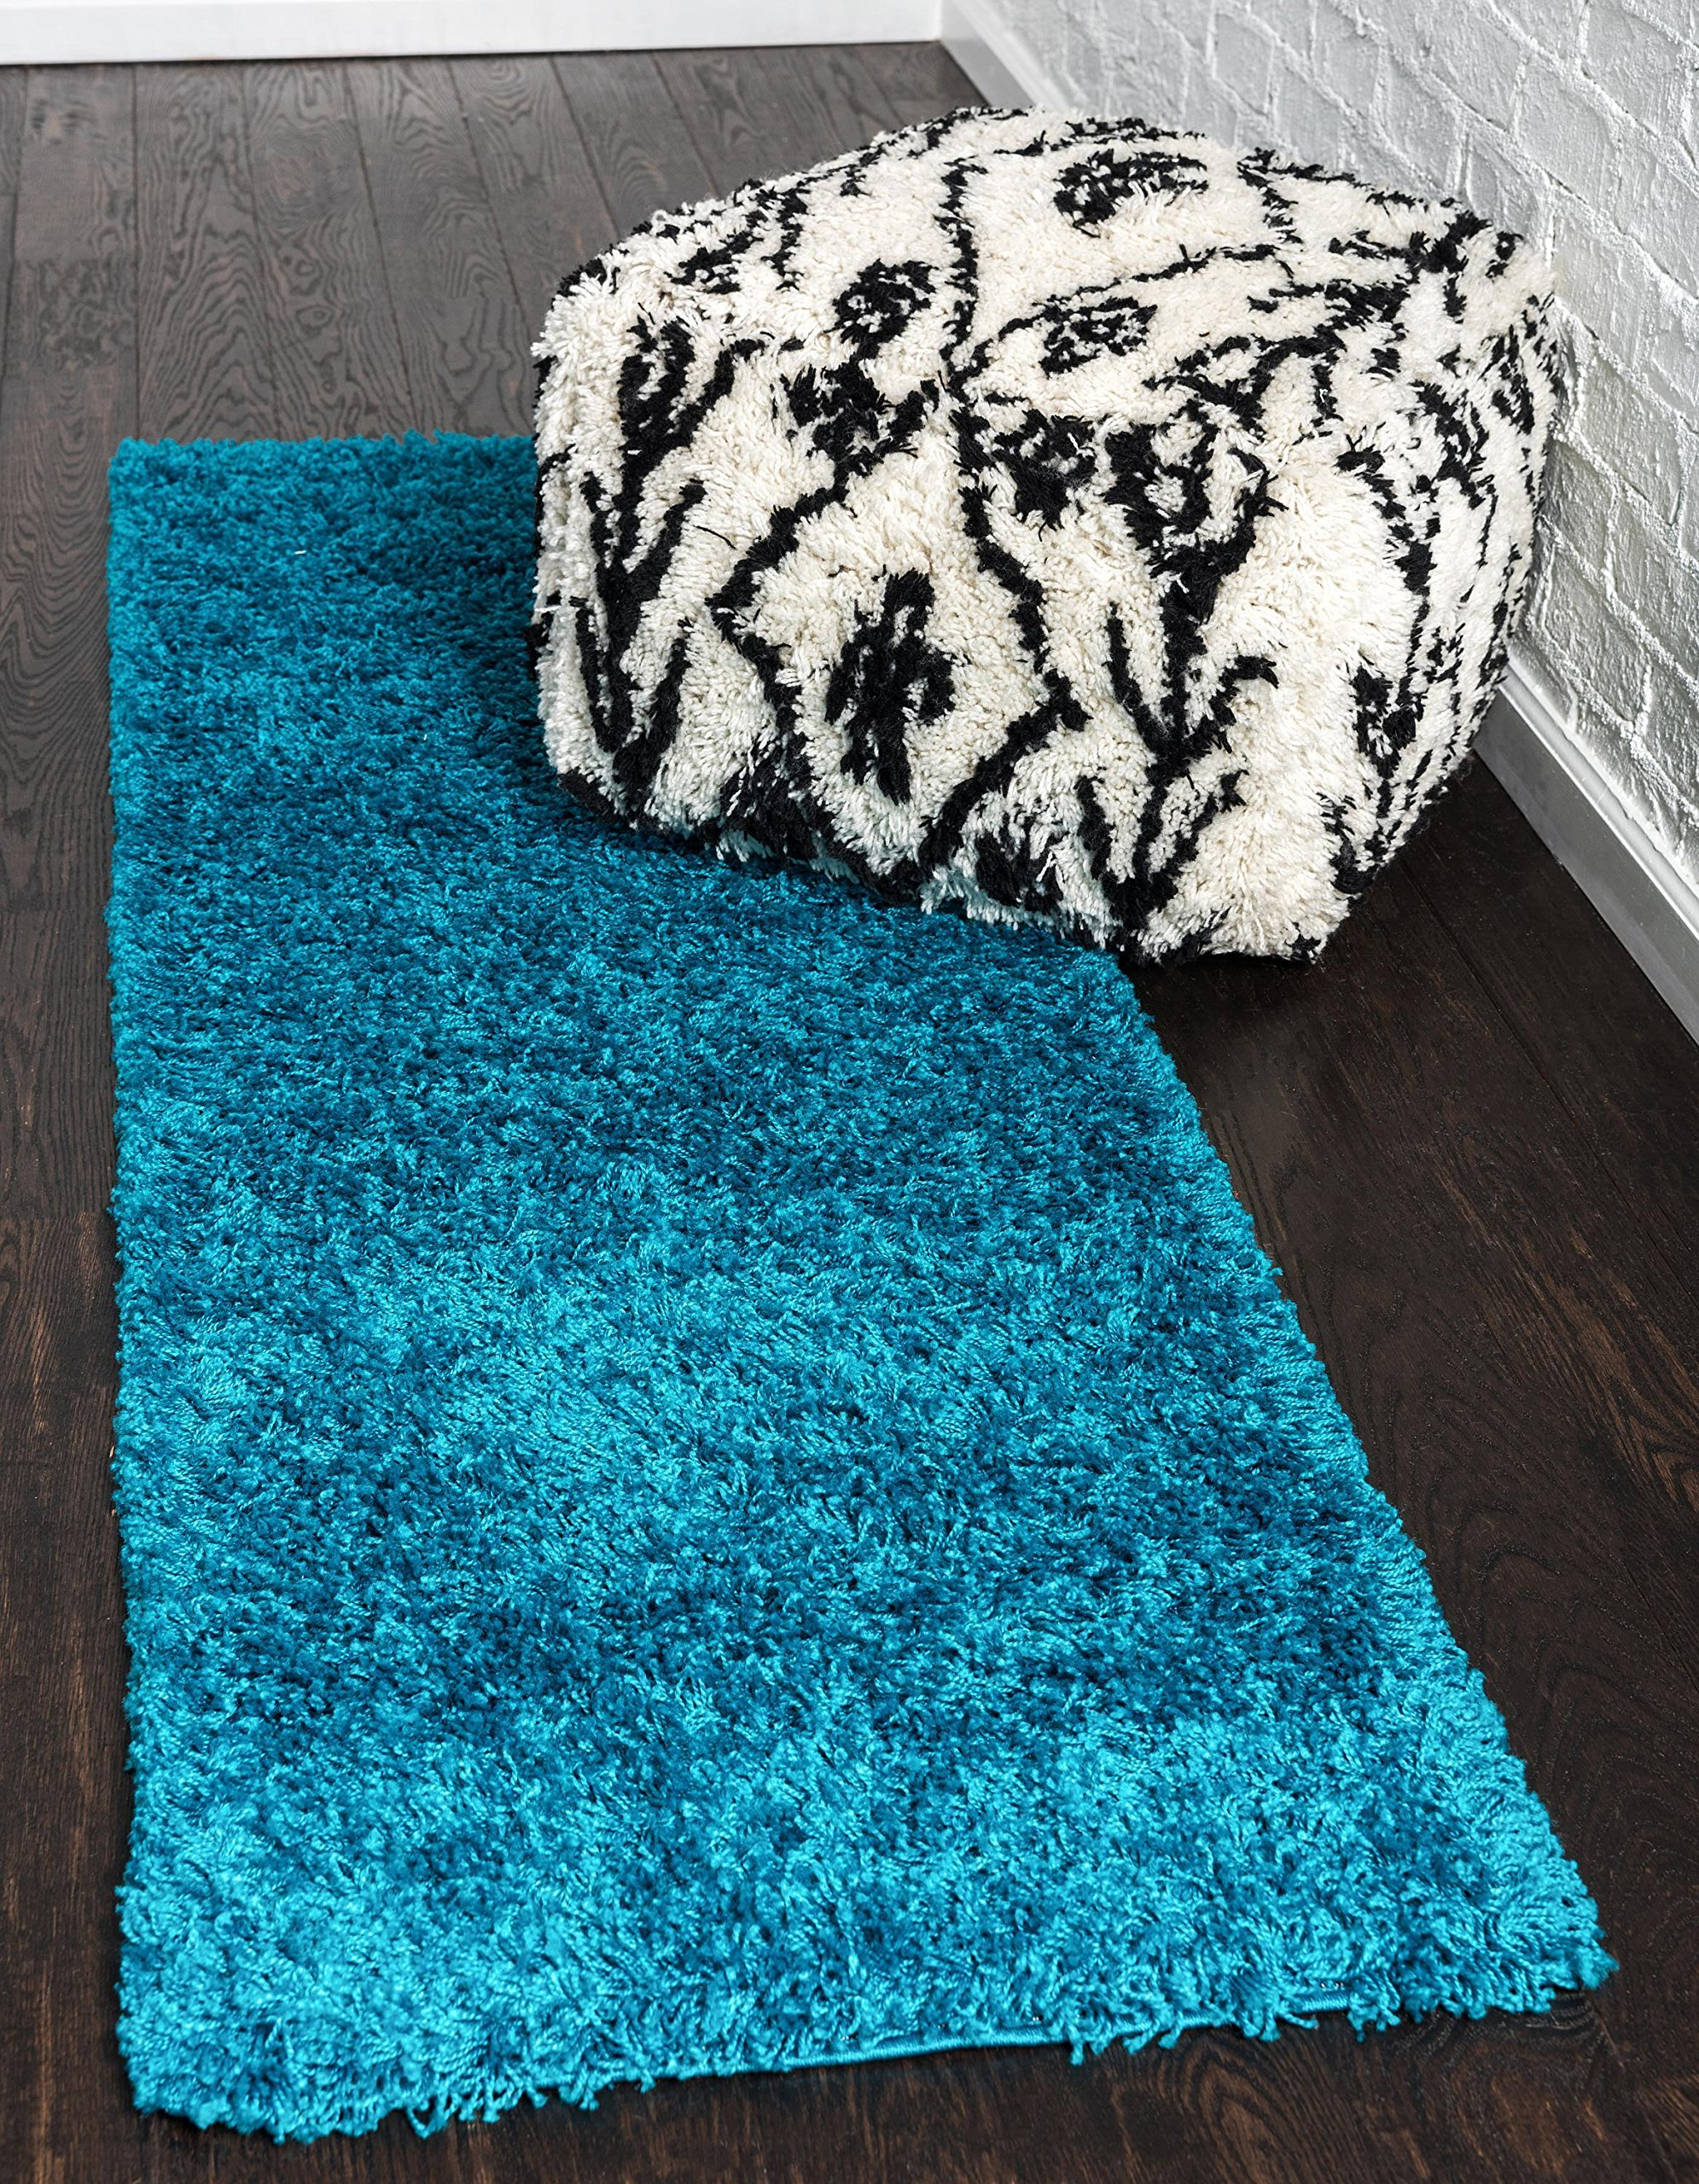 Unique Loom Solo Solid Shag Collection Modern Plush Turquoise Runner Rug (2' 6 x 16' 5)